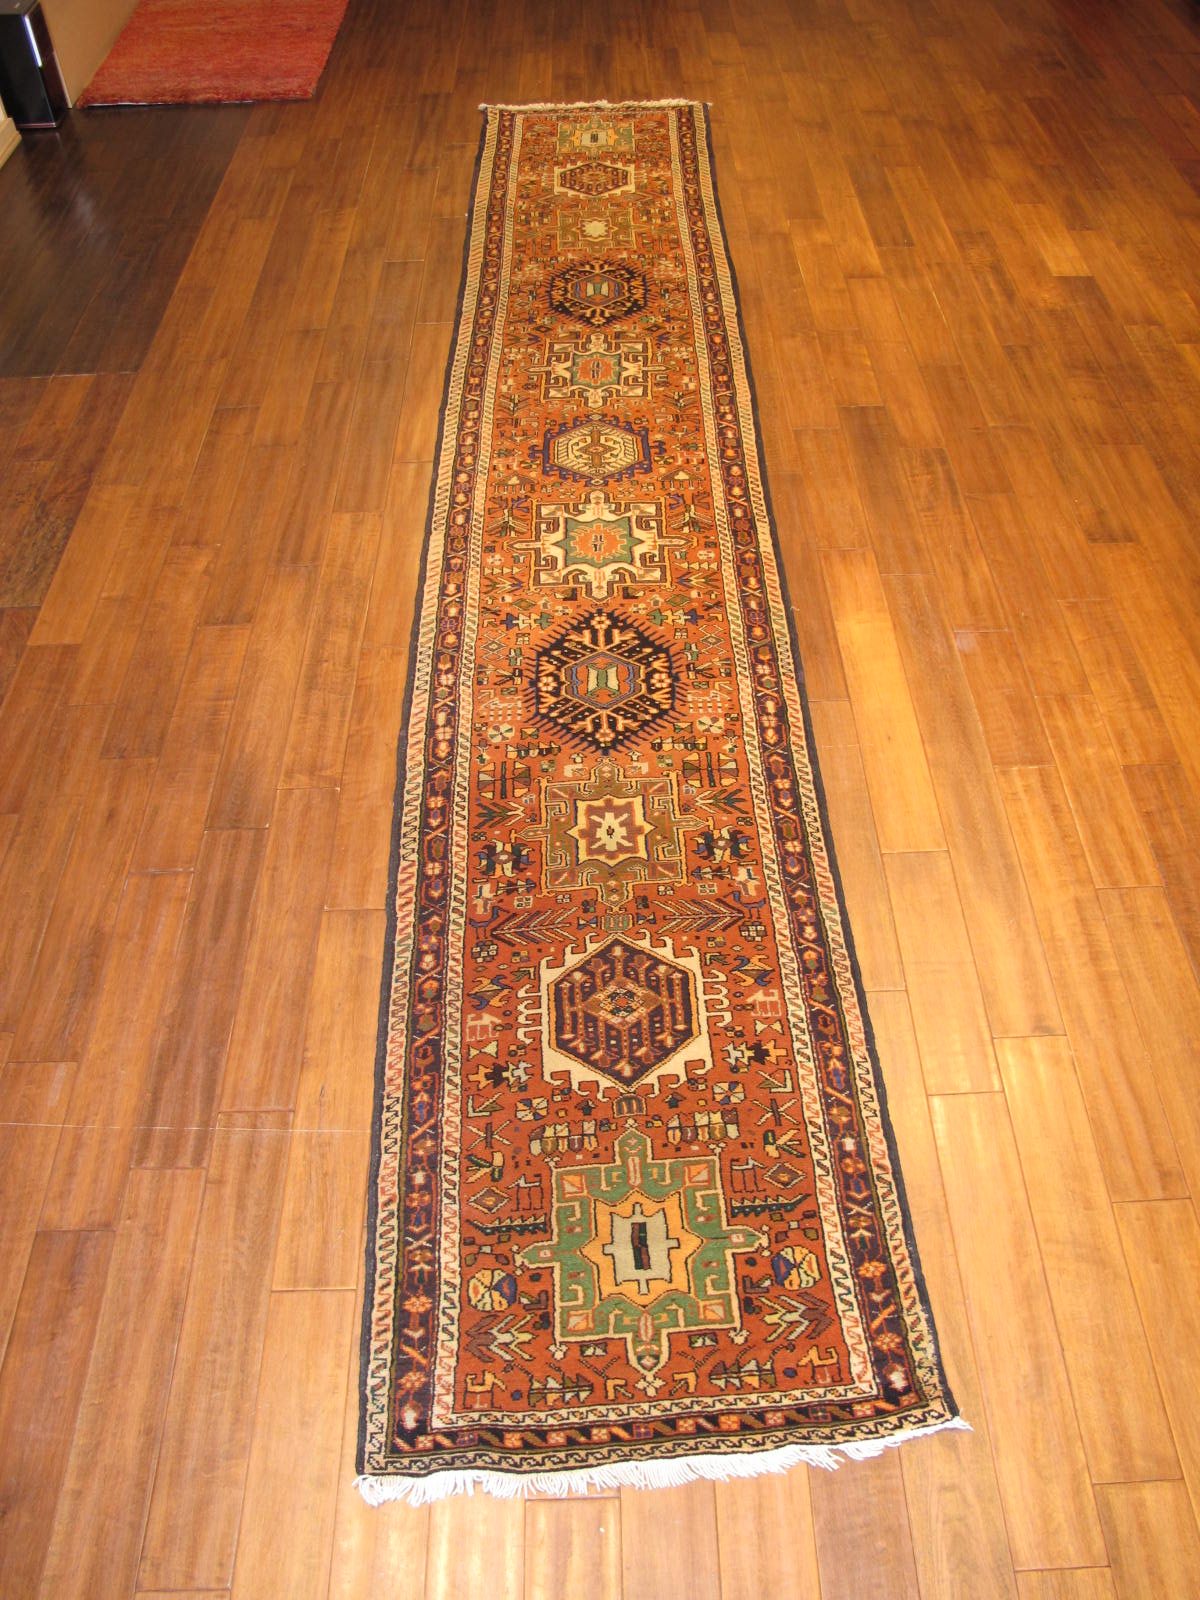 23666 Persian Karadja hall runner 2,9x15,5